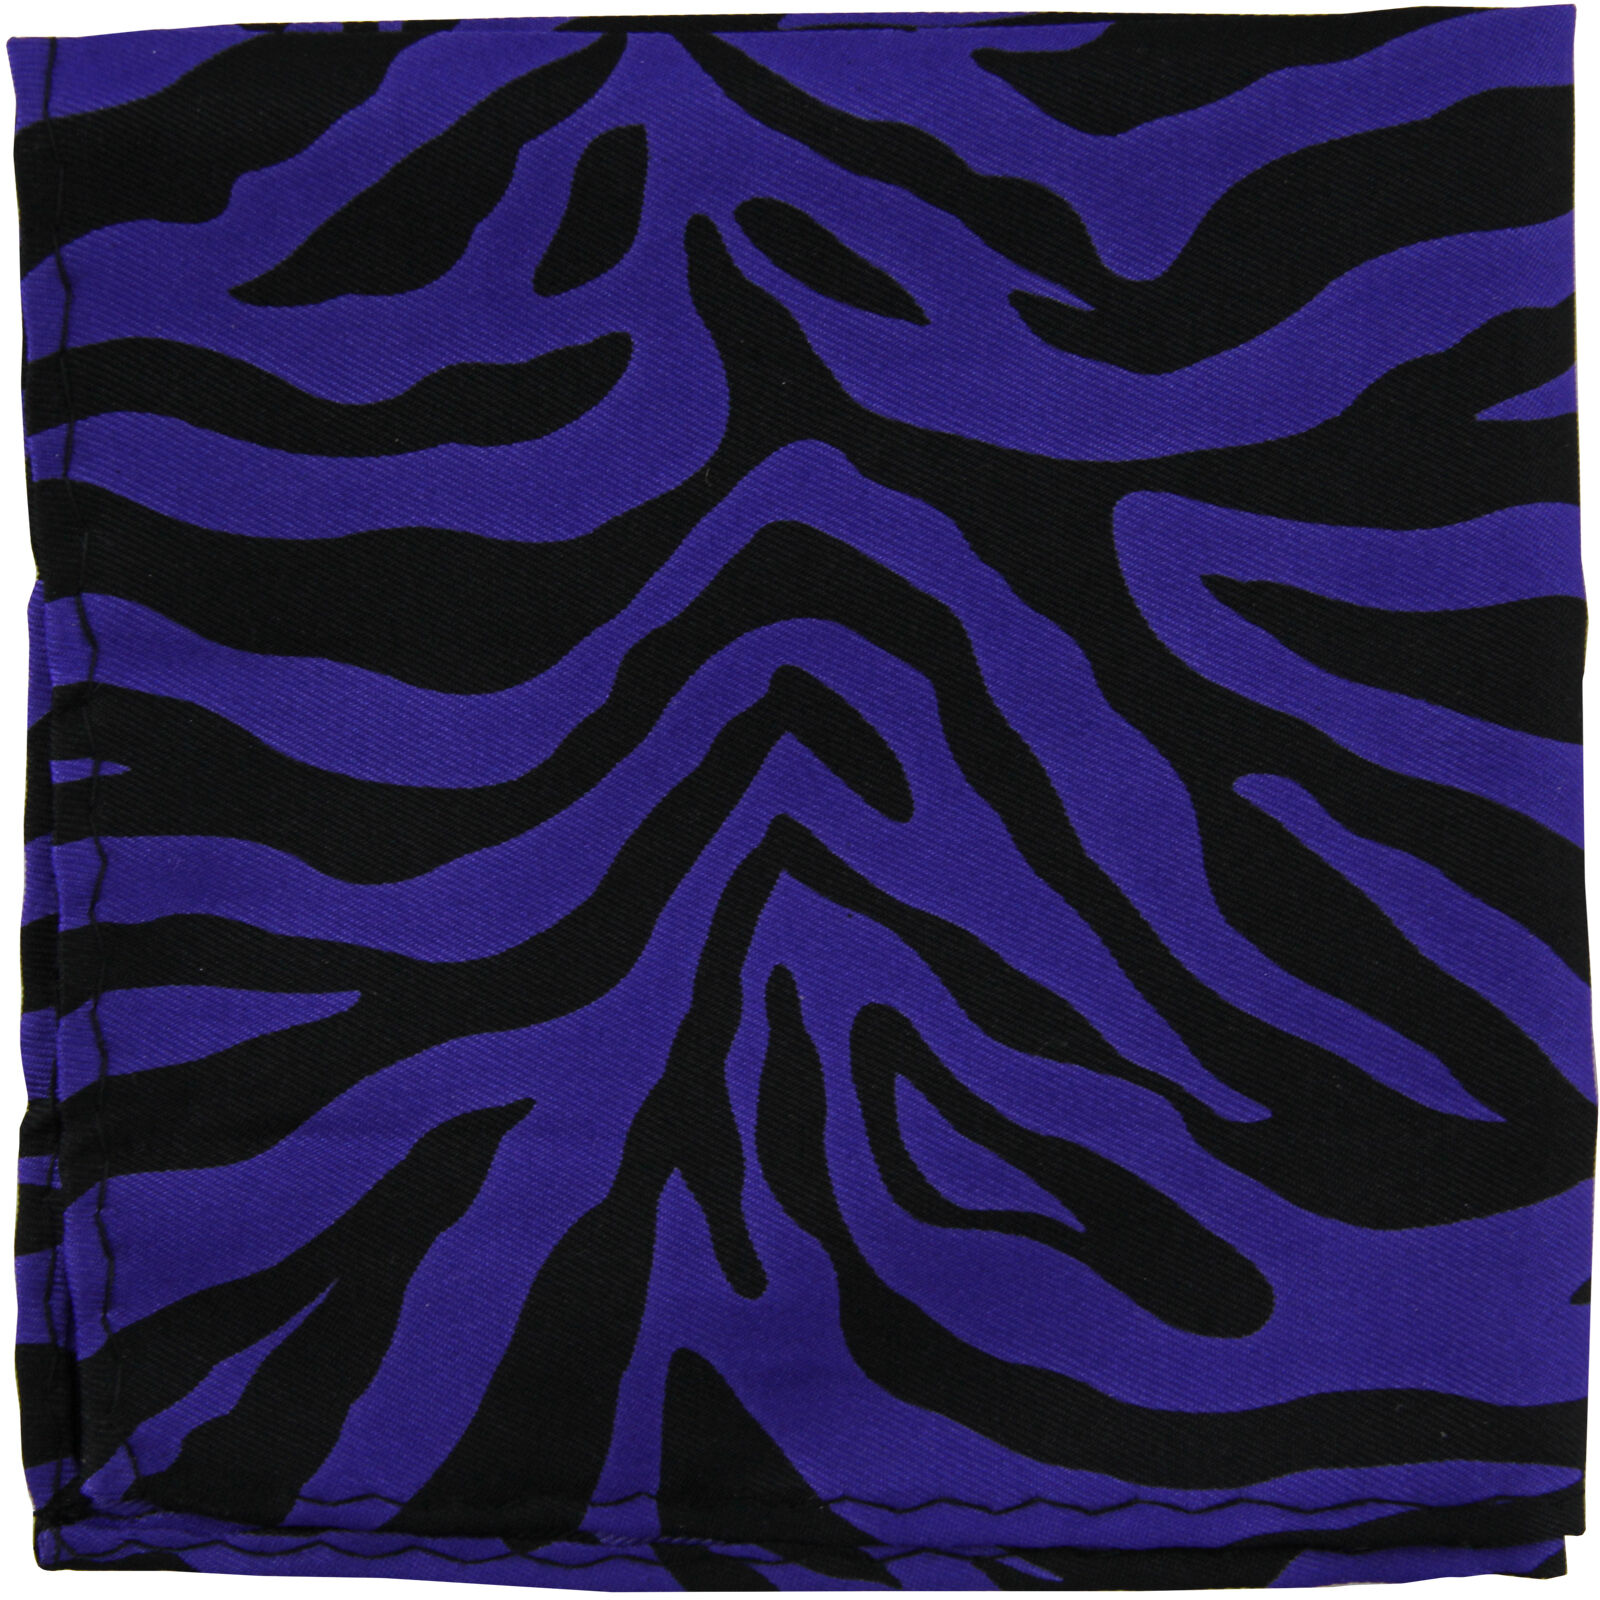 New Men's Polyester Woven zebra pocket square hankie only purple formal party